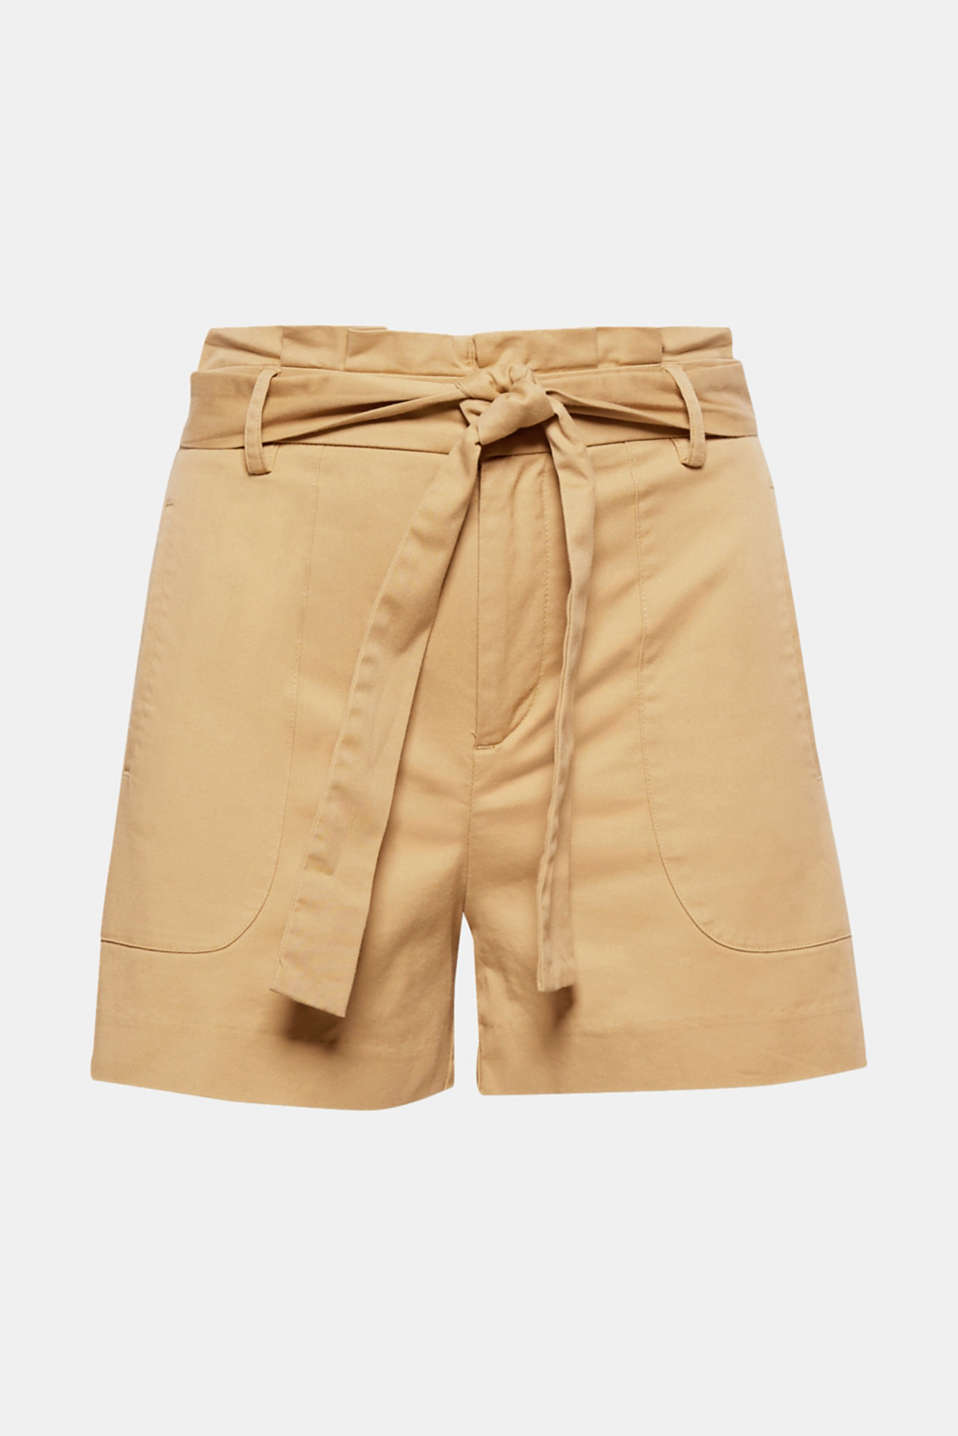 Everyday favourite with a super fashionable twist: These shorts are defined by their soft twill fabric, floaty leg width and pleated paperbag waistband with a tie-around belt.